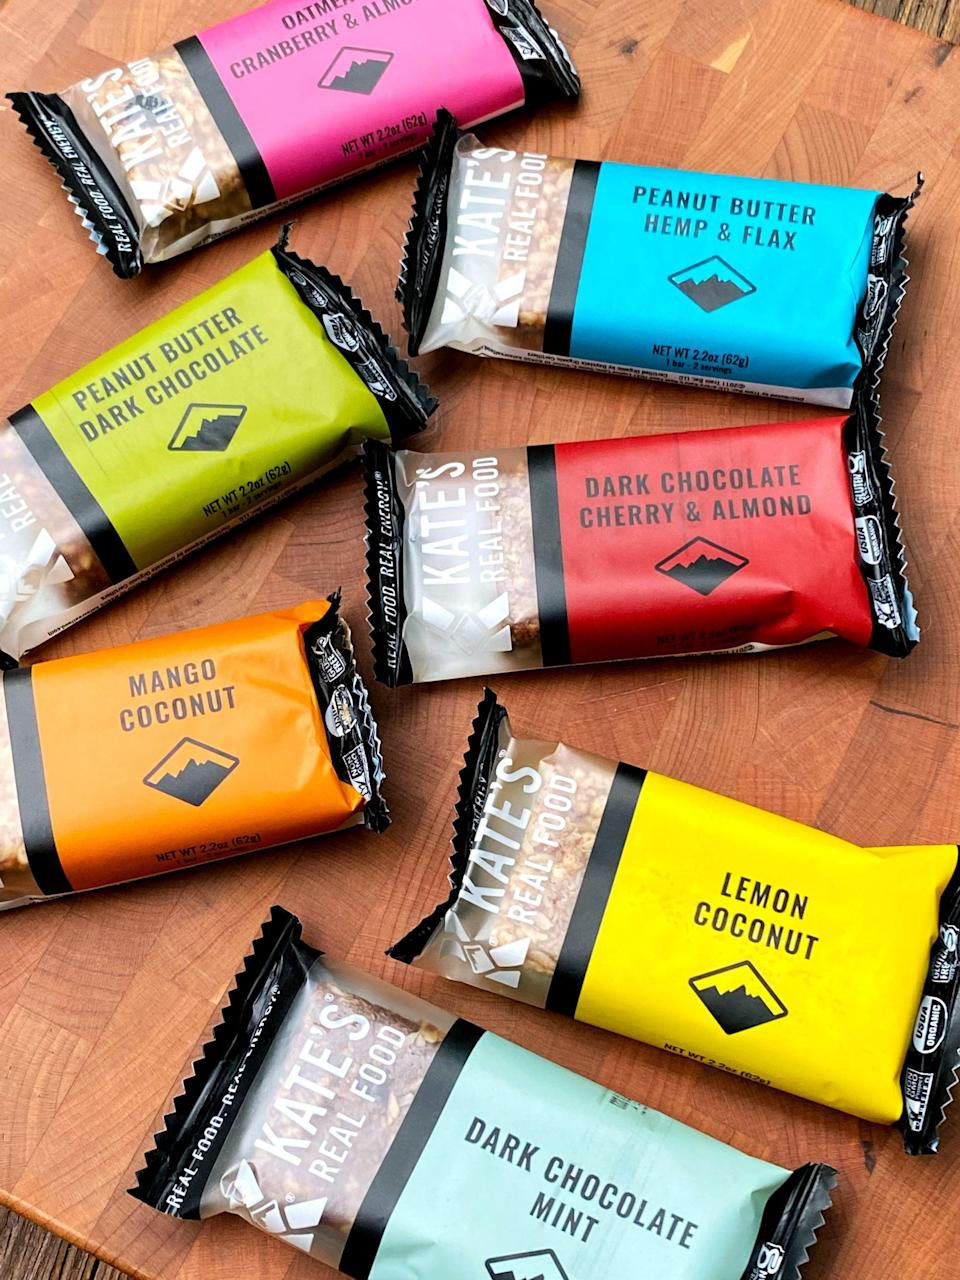 """<p>Here are the seven dairy-free flavors. I love that you can see the bars though the wrapper!</p> <p><a href=""""https://katesrealfood.com/shop/oatmeal-cranberry-almond-6-pack"""" class=""""link rapid-noclick-resp"""" rel=""""nofollow noopener"""" target=""""_blank"""" data-ylk=""""slk:Oatmeal Cranberry &amp; Almond"""">Oatmeal Cranberry &amp; Almond</a><br> <a href=""""https://katesrealfood.com/shop/peanut-butter-hemp-flax-6-pack"""" class=""""link rapid-noclick-resp"""" rel=""""nofollow noopener"""" target=""""_blank"""" data-ylk=""""slk:Peanut Butter Hemp &amp; Flax"""">Peanut Butter Hemp &amp; Flax</a><br> <a href=""""https://katesrealfood.com/shop/peanut-butter-dark-chocolate-6-pack"""" class=""""link rapid-noclick-resp"""" rel=""""nofollow noopener"""" target=""""_blank"""" data-ylk=""""slk:Peanut Butter Dark Chocolate"""">Peanut Butter Dark Chocolate</a><br> <a href=""""https://katesrealfood.com/shop/dark-chocolate-cherry-almond-6-pack"""" class=""""link rapid-noclick-resp"""" rel=""""nofollow noopener"""" target=""""_blank"""" data-ylk=""""slk:Dark Chocolate Cherry &amp; Almond"""">Dark Chocolate Cherry &amp; Almond</a><br> <a href=""""https://katesrealfood.com/shop/mango-coconut-6-pack"""" class=""""link rapid-noclick-resp"""" rel=""""nofollow noopener"""" target=""""_blank"""" data-ylk=""""slk:Mango Coconut"""">Mango Coconut</a><br> <a href=""""https://katesrealfood.com/shop/lemon-coconut-ginger-6-pack"""" class=""""link rapid-noclick-resp"""" rel=""""nofollow noopener"""" target=""""_blank"""" data-ylk=""""slk:Lemon Coconut"""">Lemon Coconut</a><br> <a href=""""https://katesrealfood.com/shop/dark-chocolate-mint-6-pack"""" class=""""link rapid-noclick-resp"""" rel=""""nofollow noopener"""" target=""""_blank"""" data-ylk=""""slk:Dark Chocolate Mint"""">Dark Chocolate Mint</a></p> <p><a href=""""https://katesrealfood.com/shop/peanut-butter-milk-chocolate-6-pack"""" class=""""link rapid-noclick-resp"""" rel=""""nofollow noopener"""" target=""""_blank"""" data-ylk=""""slk:Peanut Butter Milk Chocolate"""">Peanut Butter Milk Chocolate</a> is the only flavor that contains dairy.</p>"""